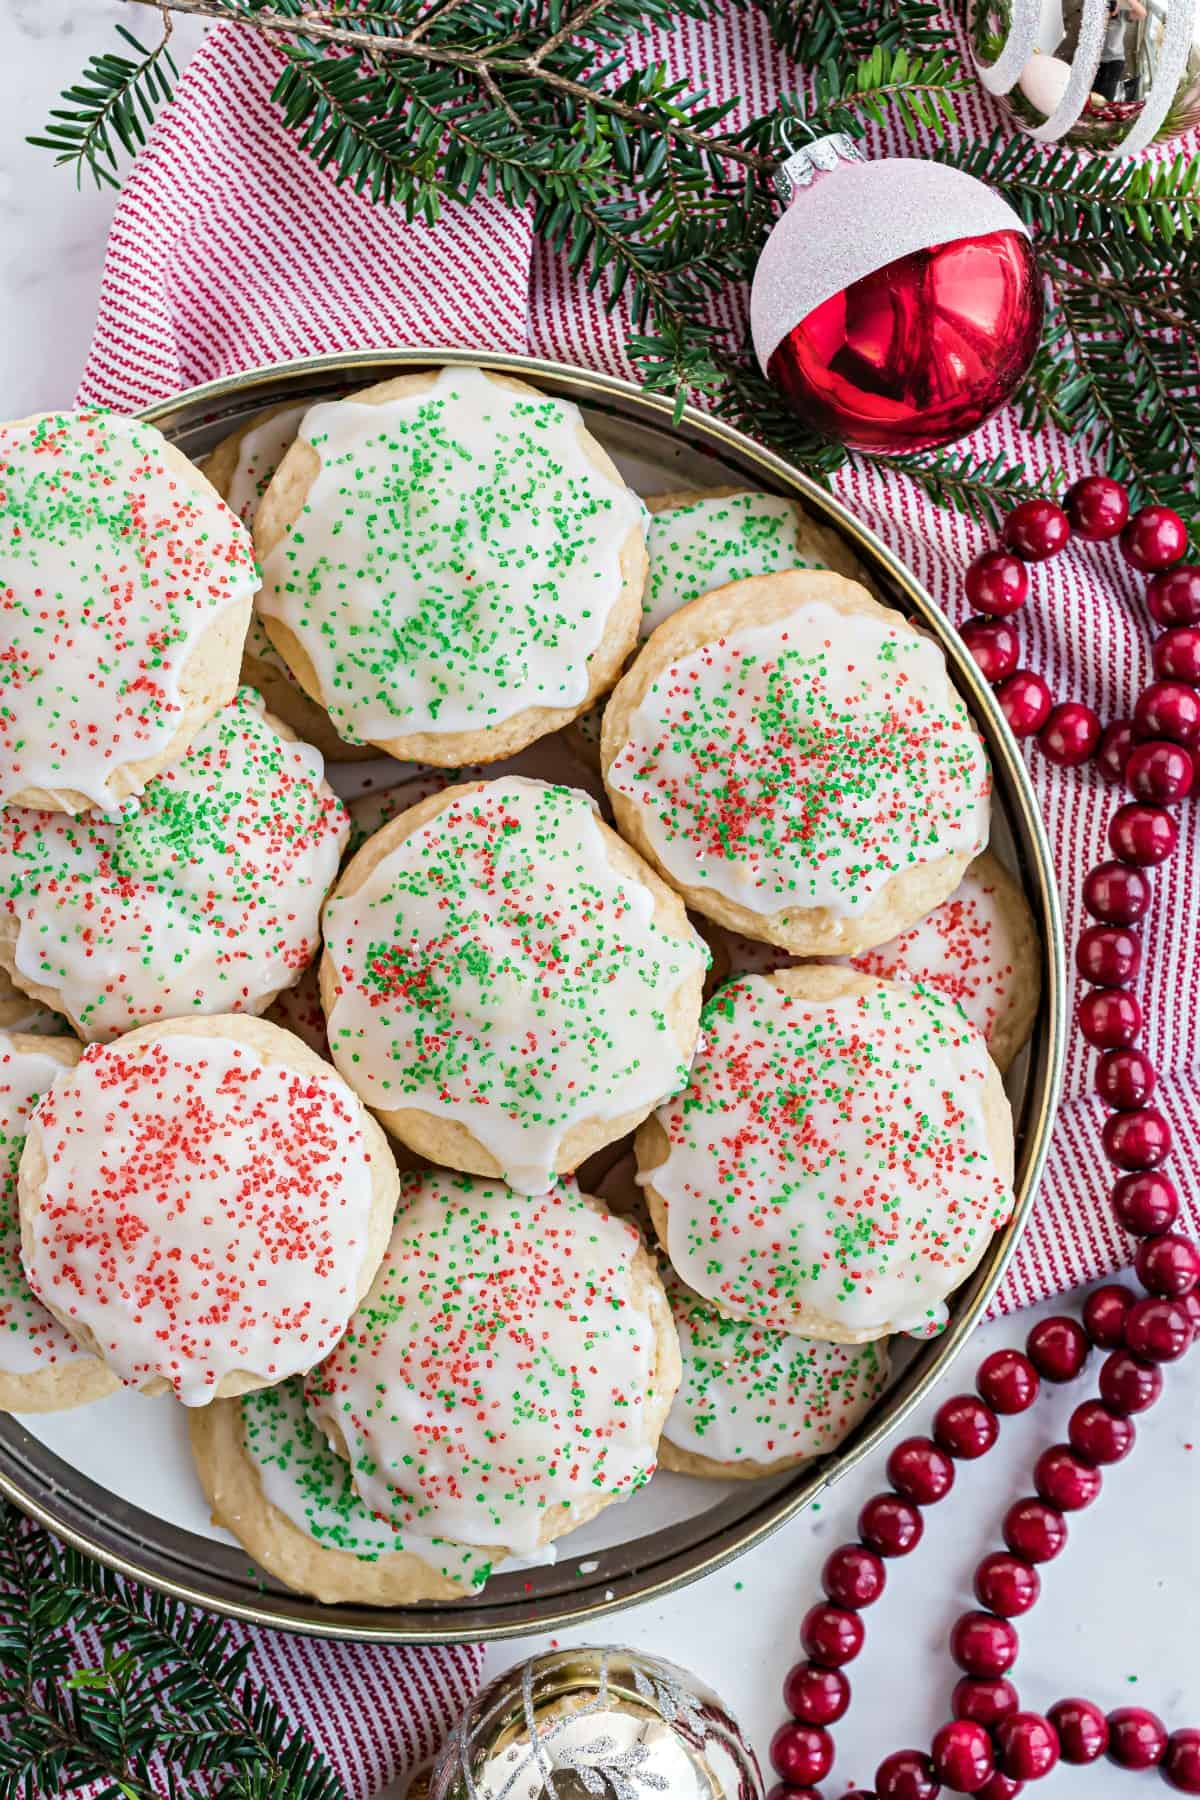 Ricotta cookies with Christmas sprinkles in tin.